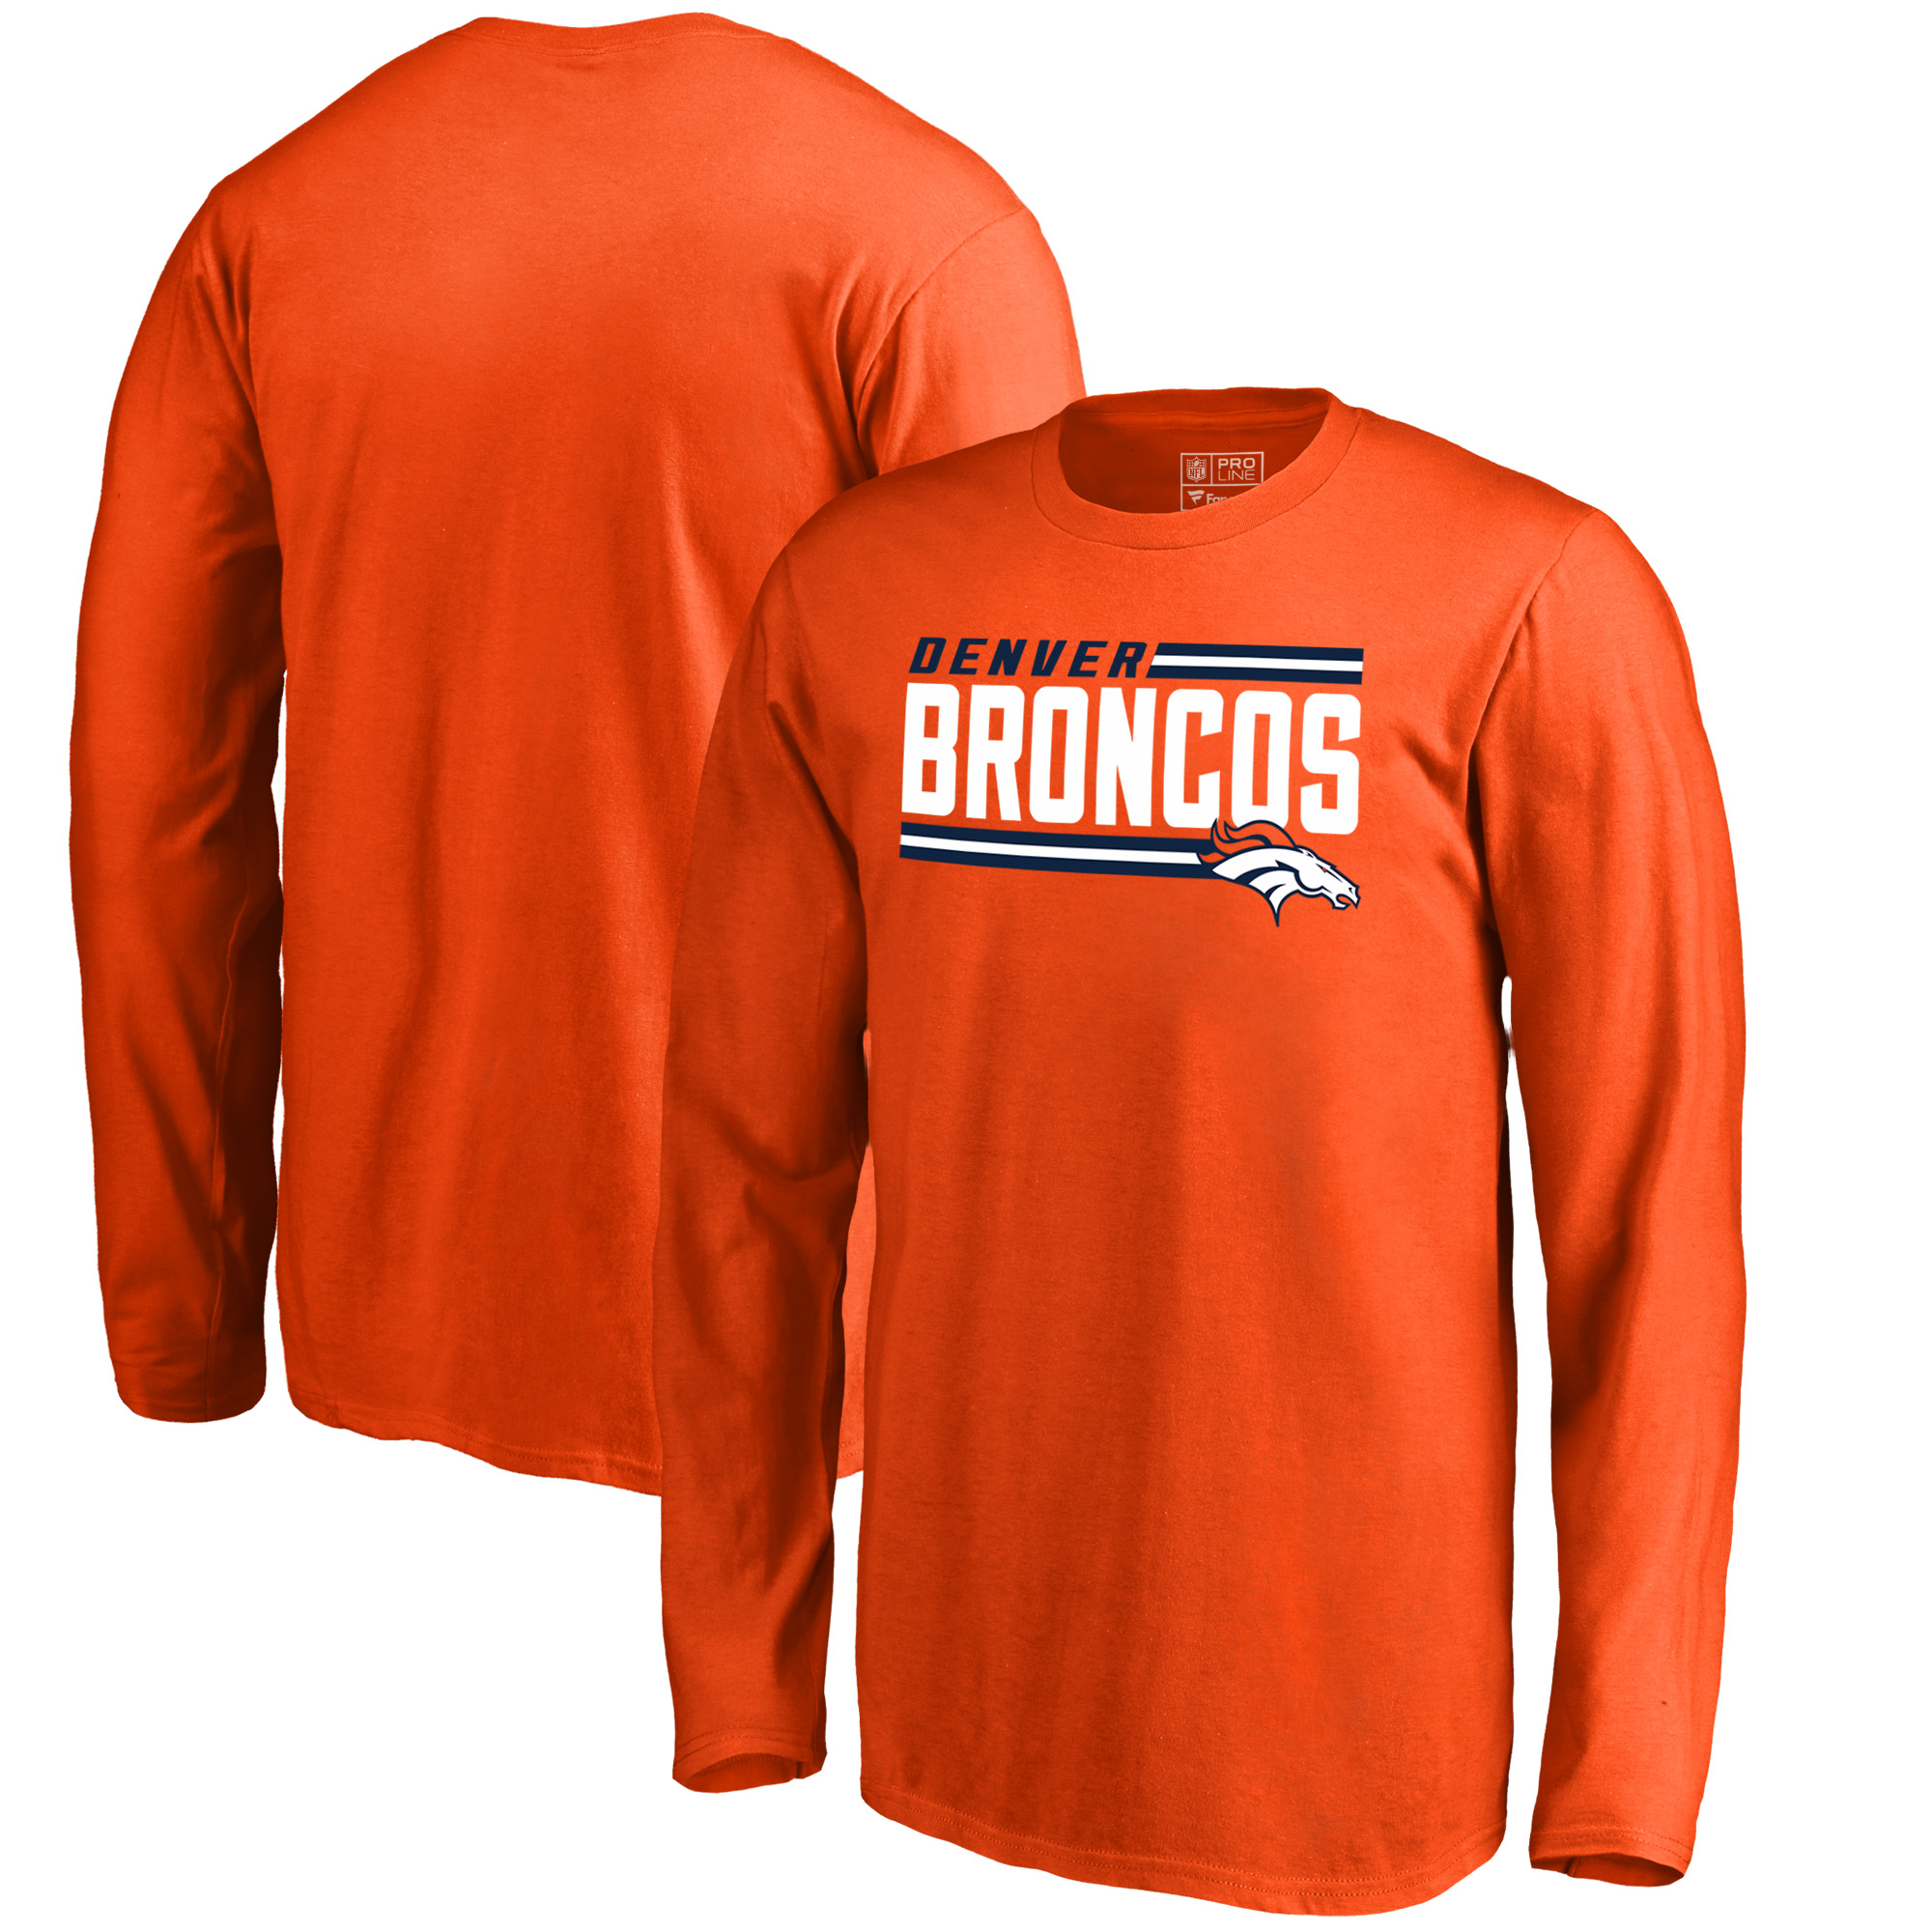 Denver Broncos NFL Pro Line by Fanatics Branded Youth Iconic Collection On Side Stripe Long Sleeve T-Shirt - Orange